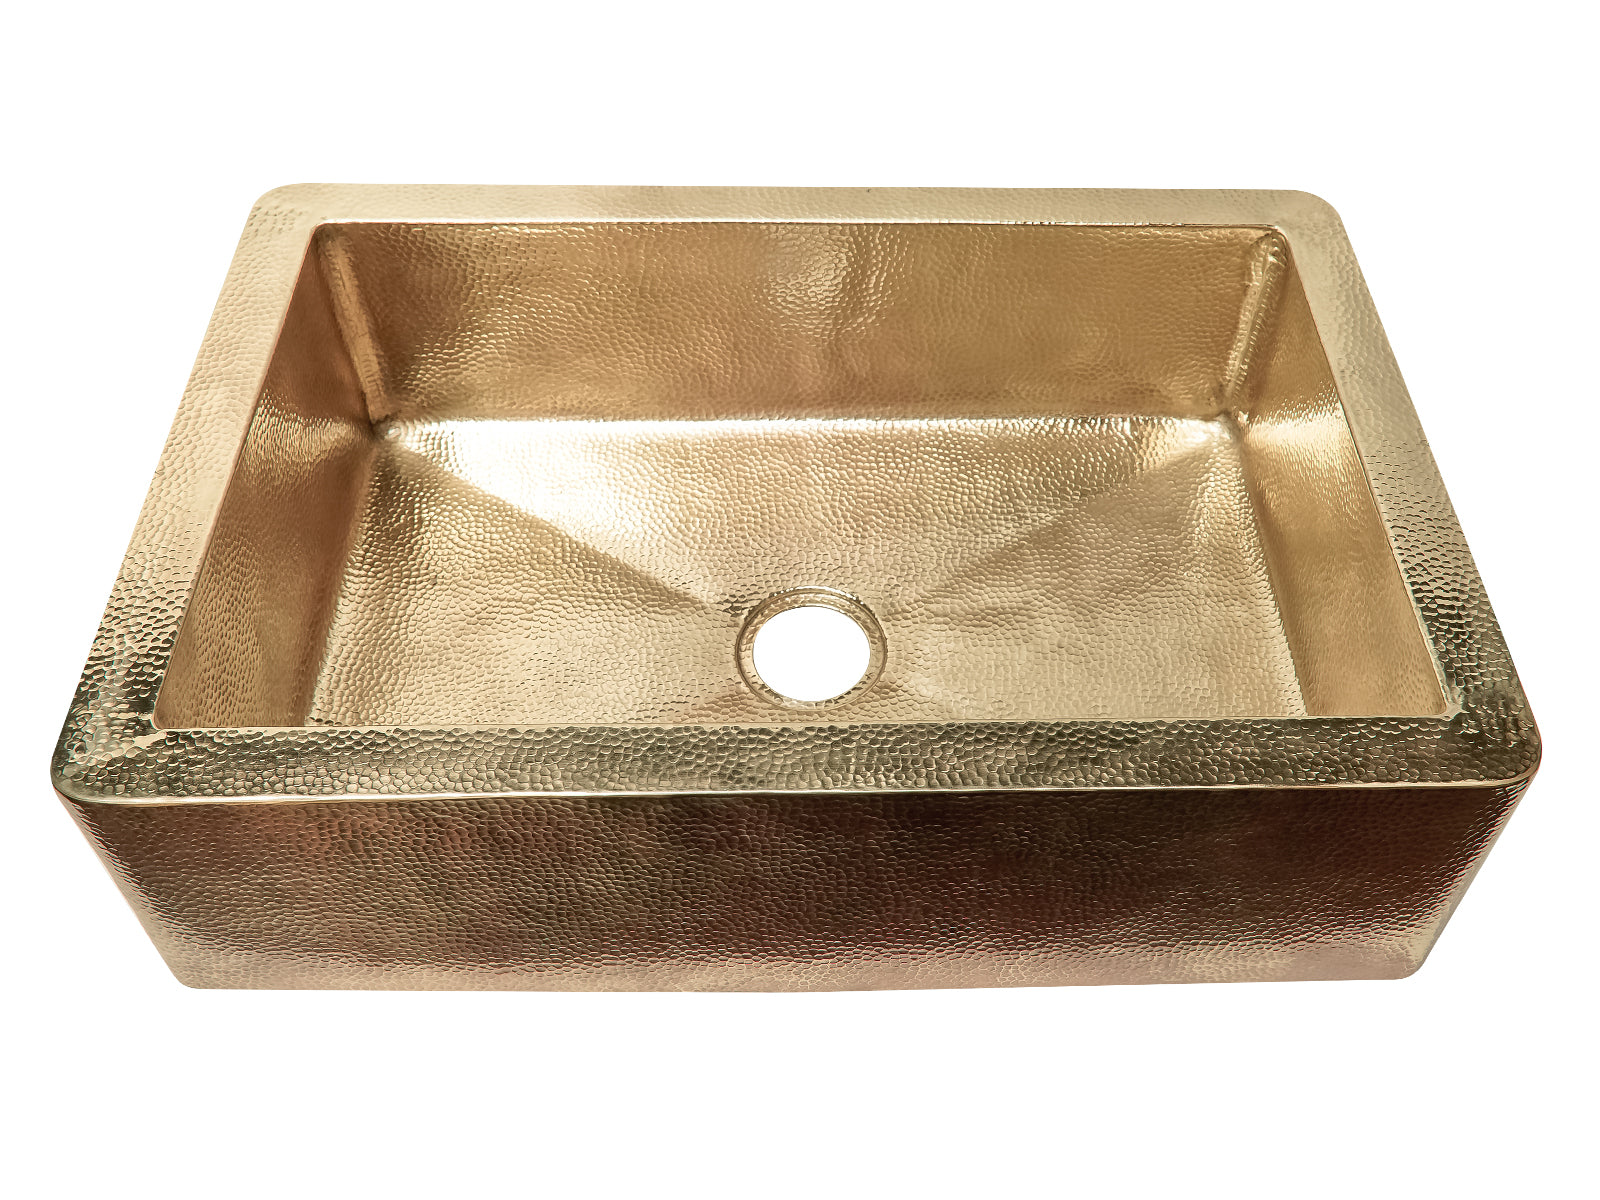 Brass Farmhouse Kitchen Sink Neofernanda Design